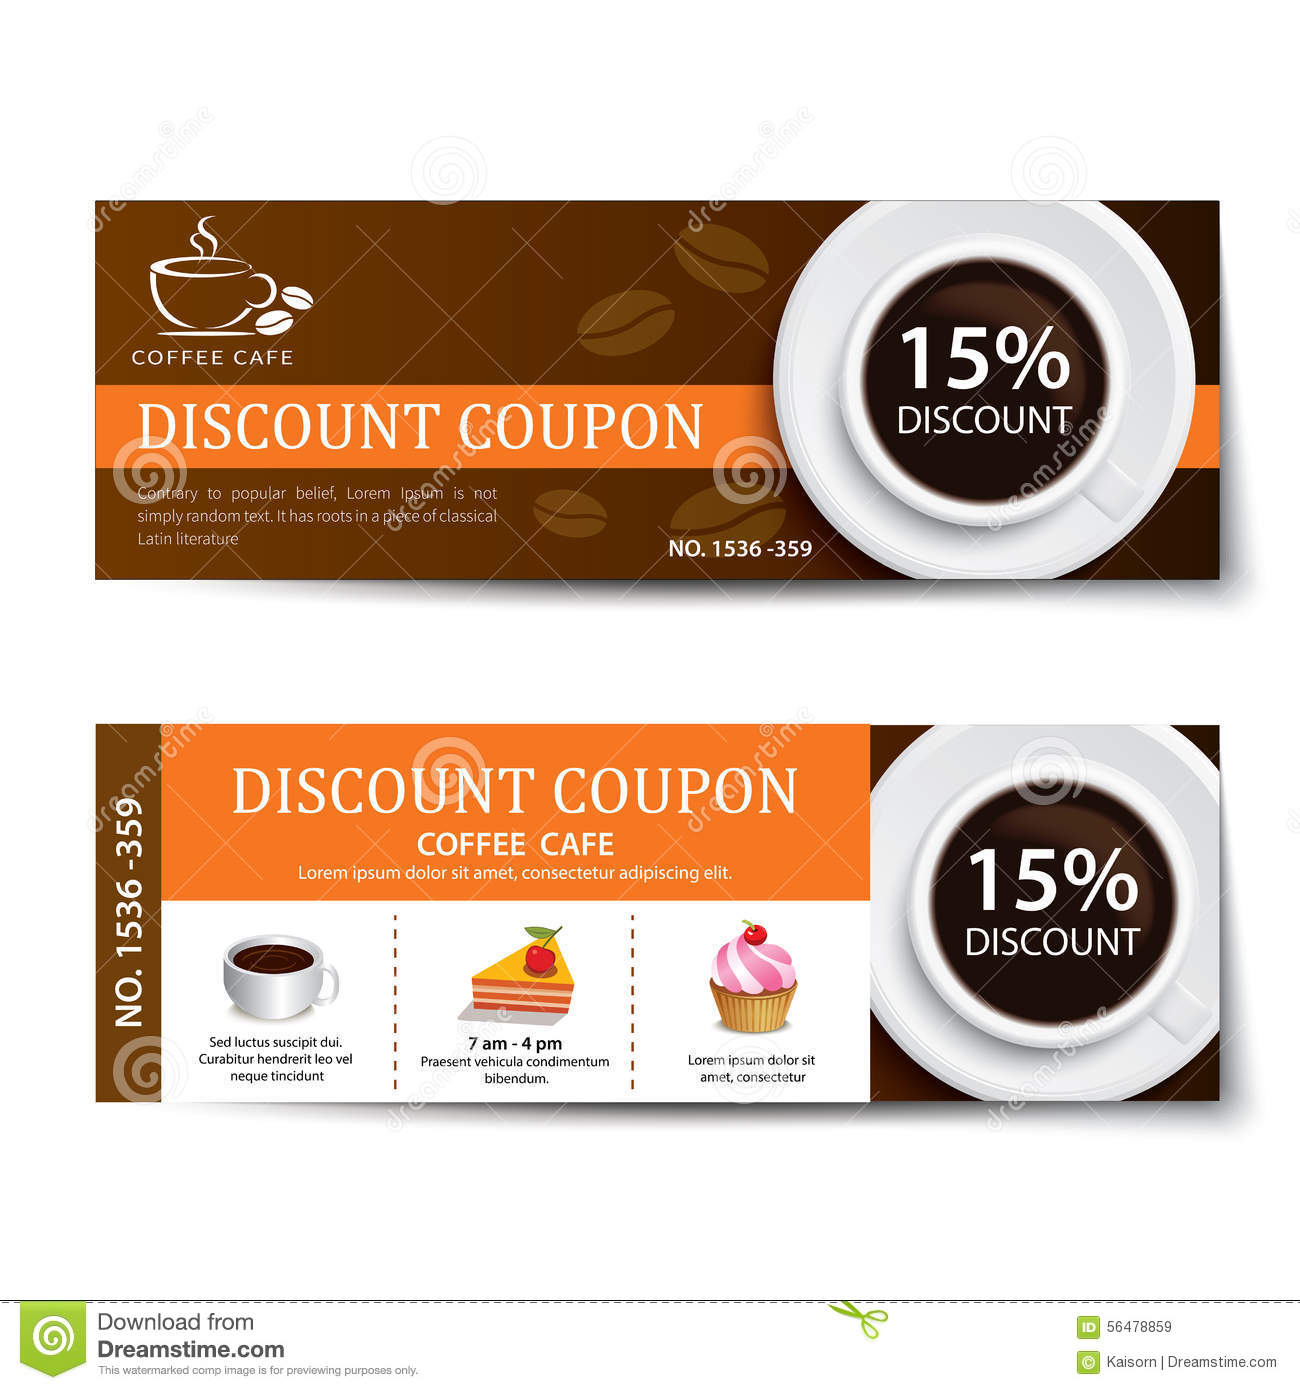 Discount coupon for